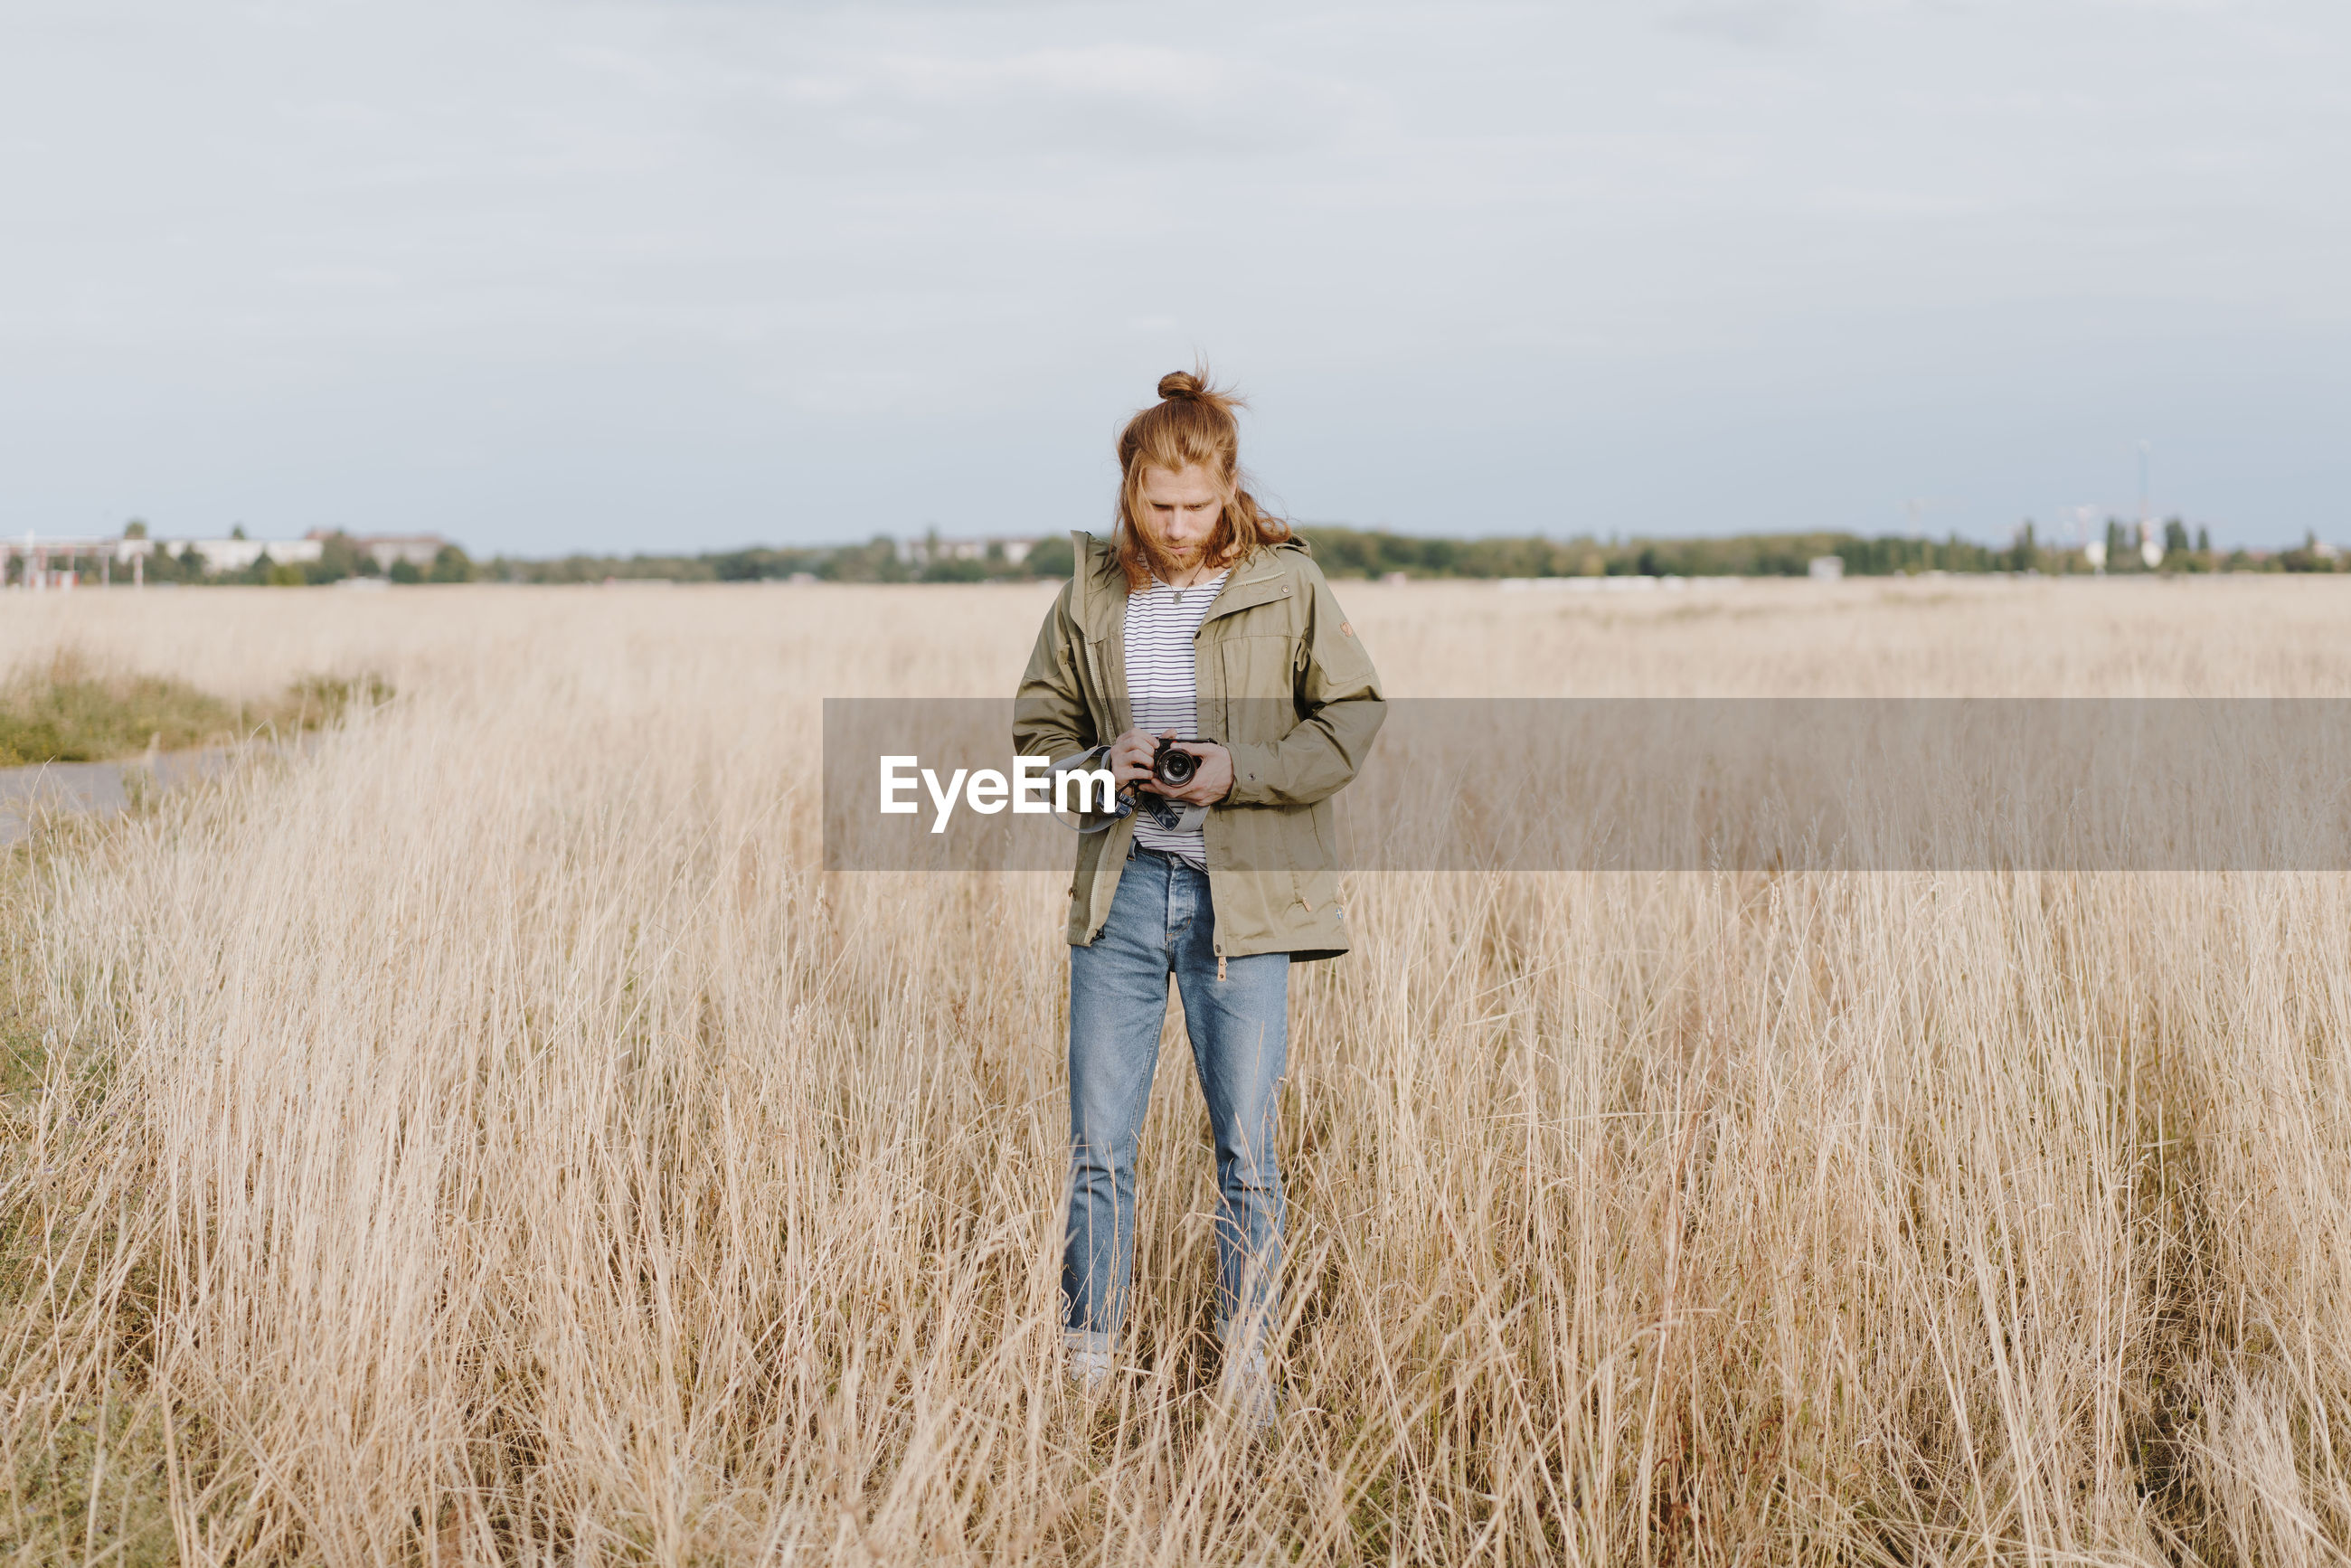 one person, land, field, standing, young adult, casual clothing, leisure activity, real people, lifestyles, plant, smiling, full length, front view, young women, sky, nature, day, happiness, hairstyle, outdoors, beautiful woman